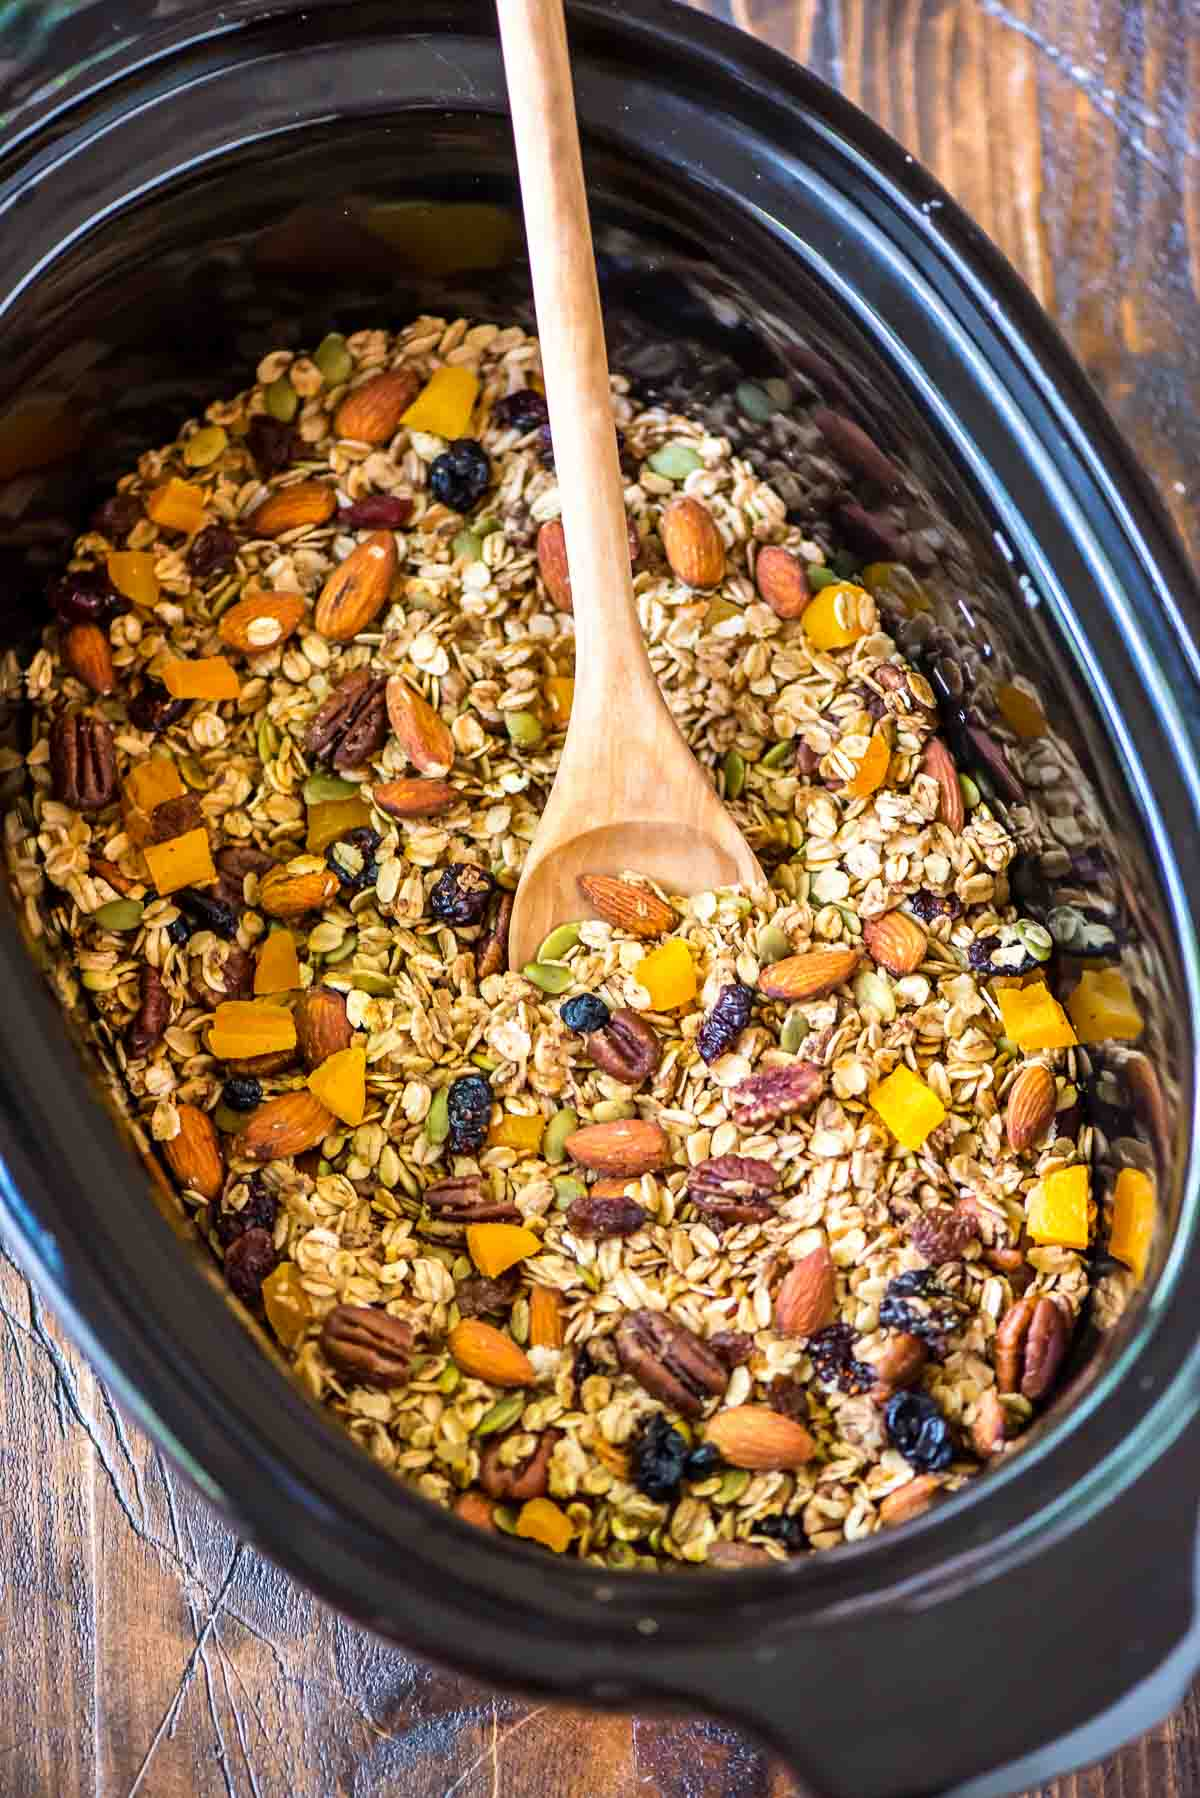 batch of healthy gluten free granola in a crock pot being stirred with a wooden spoon